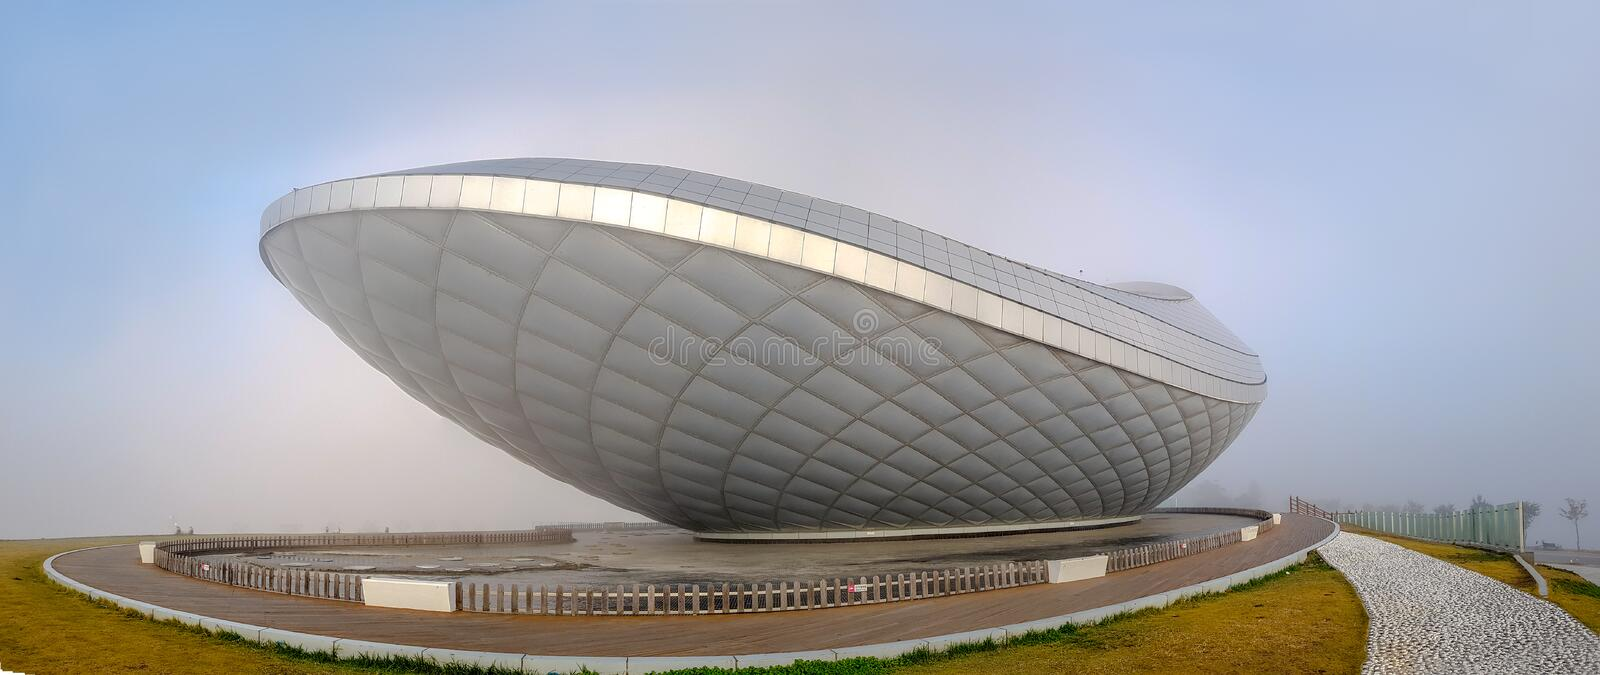 The ARC Cultural Center ,Futuristic-style building with art galleries & exhibit spaces royalty free stock images